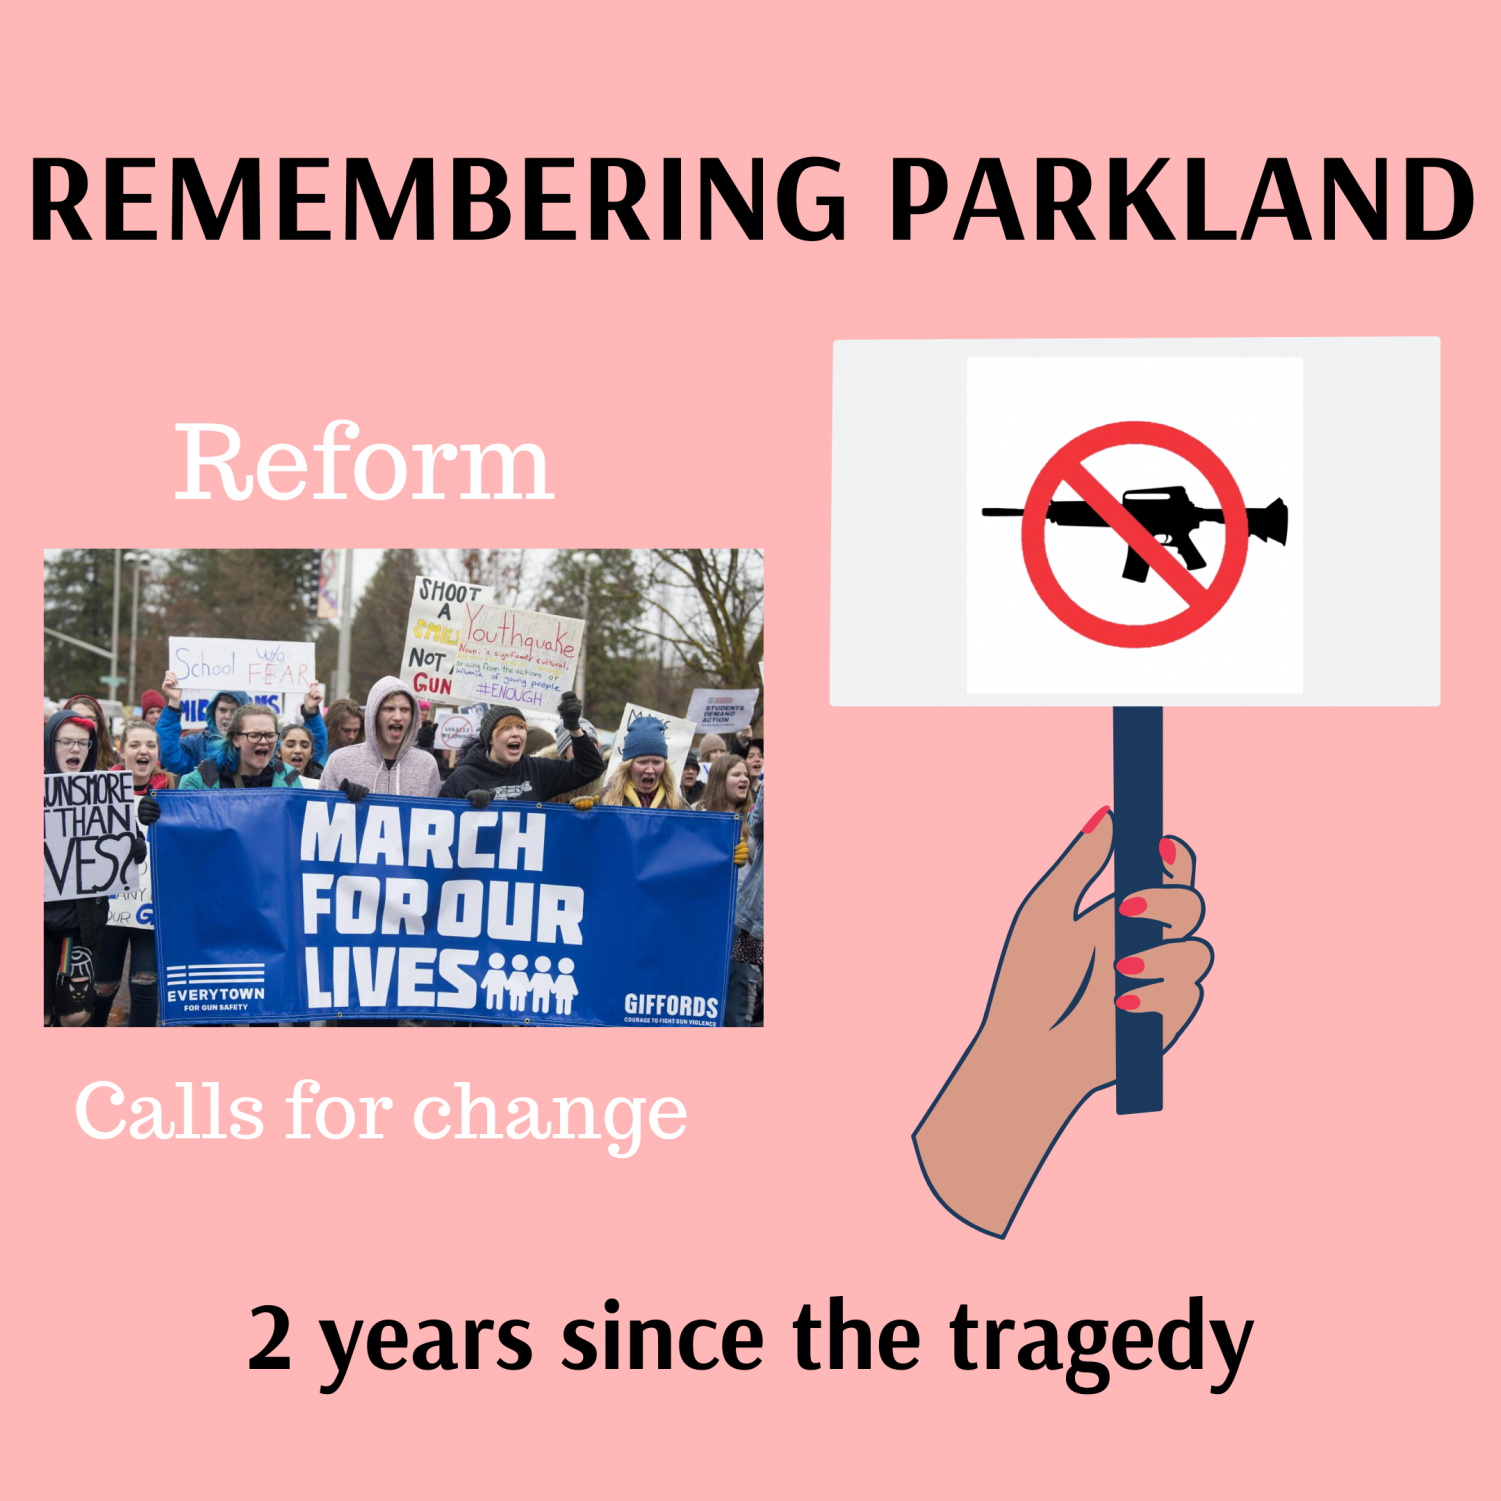 The Parkland Shooting in Marjory Stoneman Douglas High School is still relevant two years later as those affected remember the tragedy.